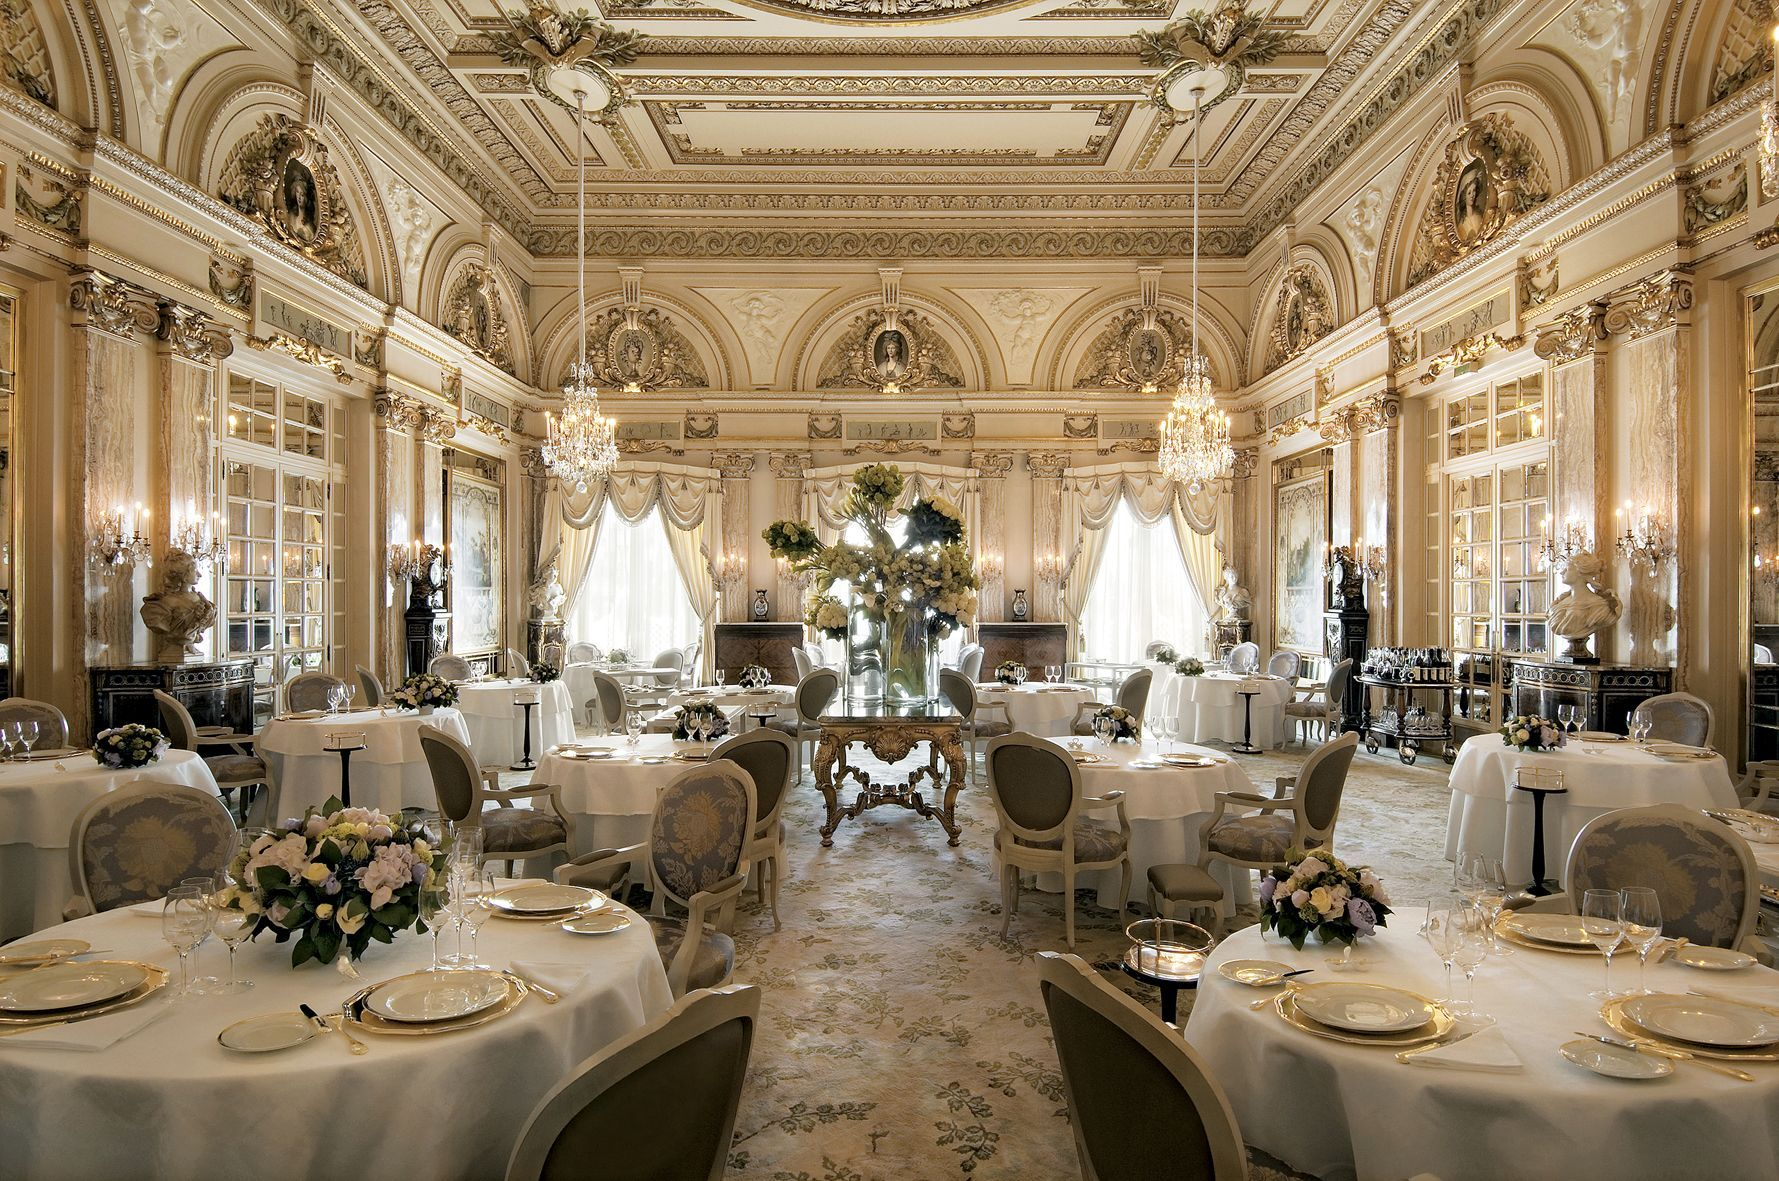 Restaurant Louis Xv Alain Duce Hotel De Paris Monte Carlo Monaco Jacket Required And Tie Recommended 3 Stars In The Michelin Guide Mlle